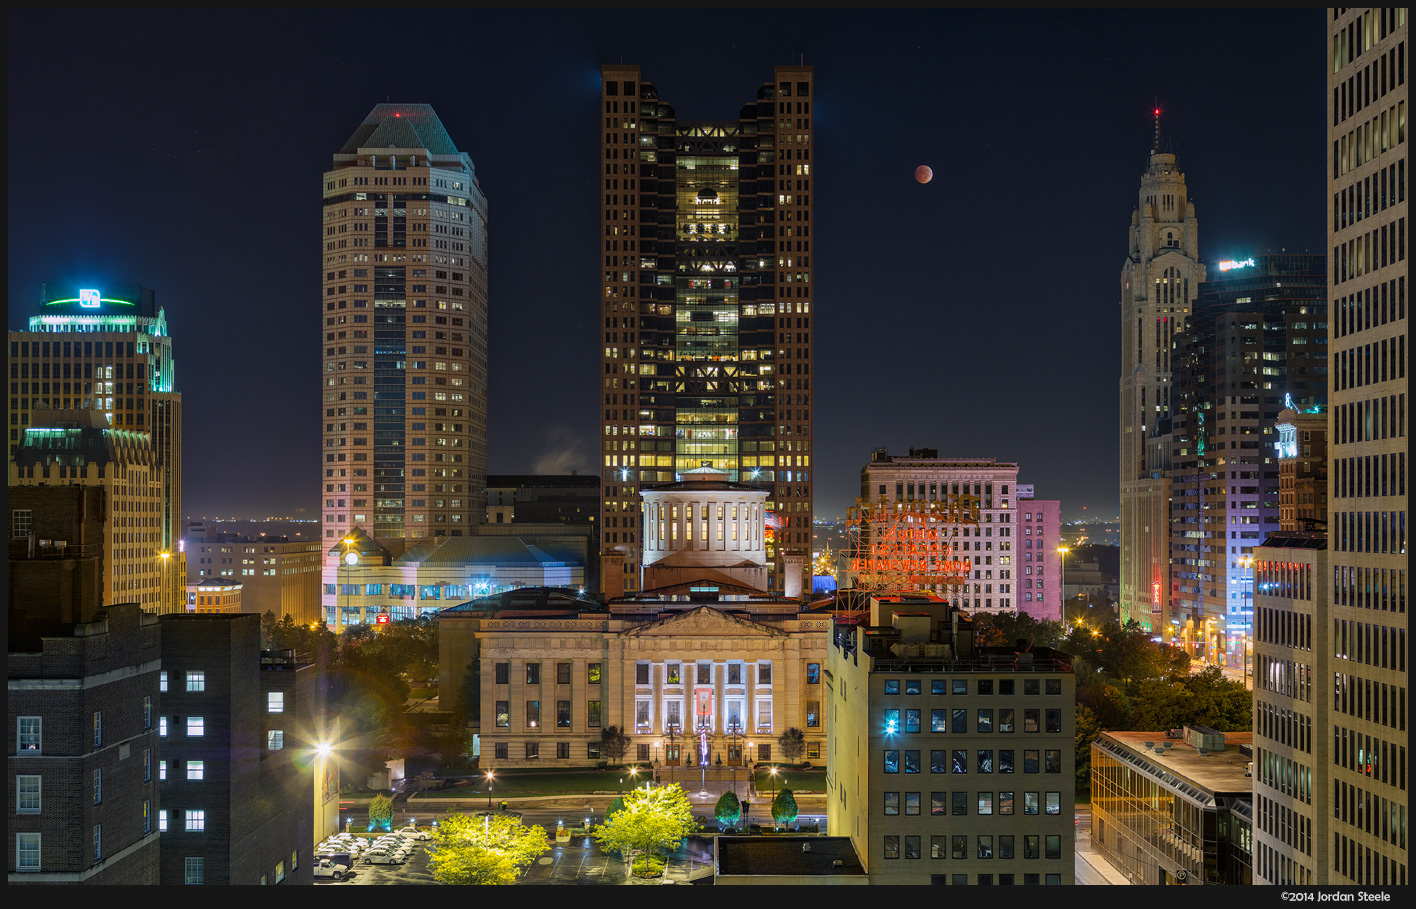 Eclipse over Columbus - Olympus OM-D E-M5 with Canon FD 50-300mm f/4.5L (Stitch of 10 images)